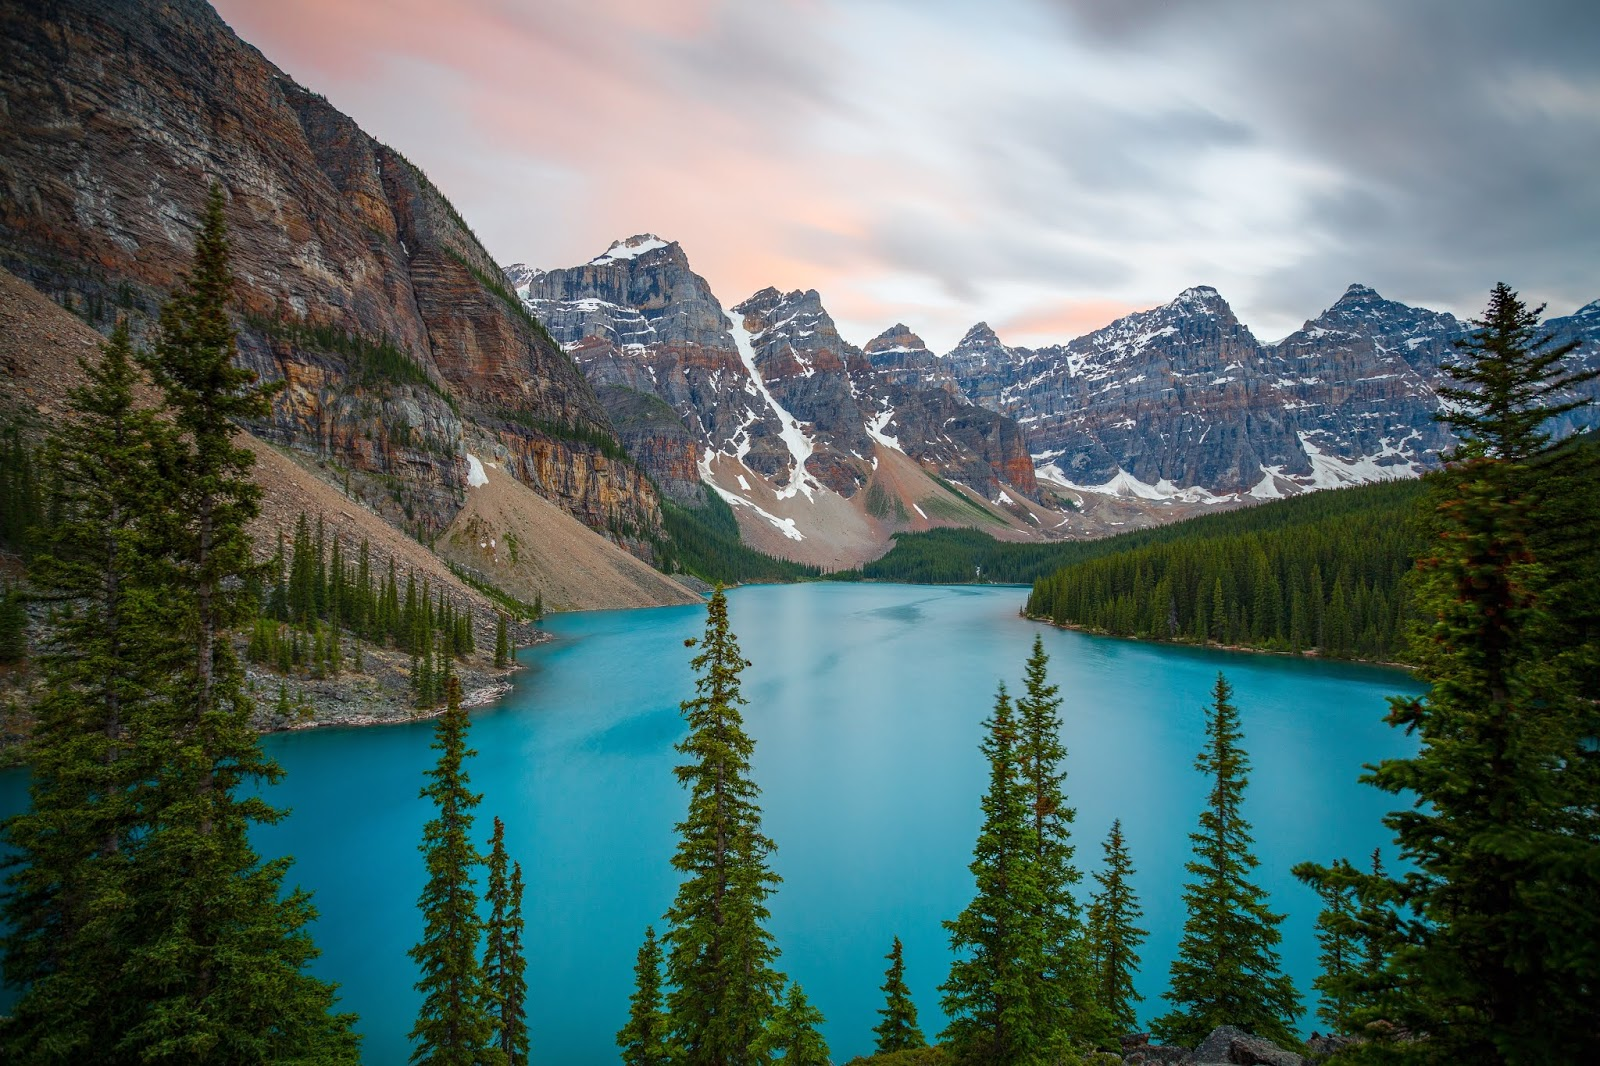 Things to see and do in Canada Banff National Park